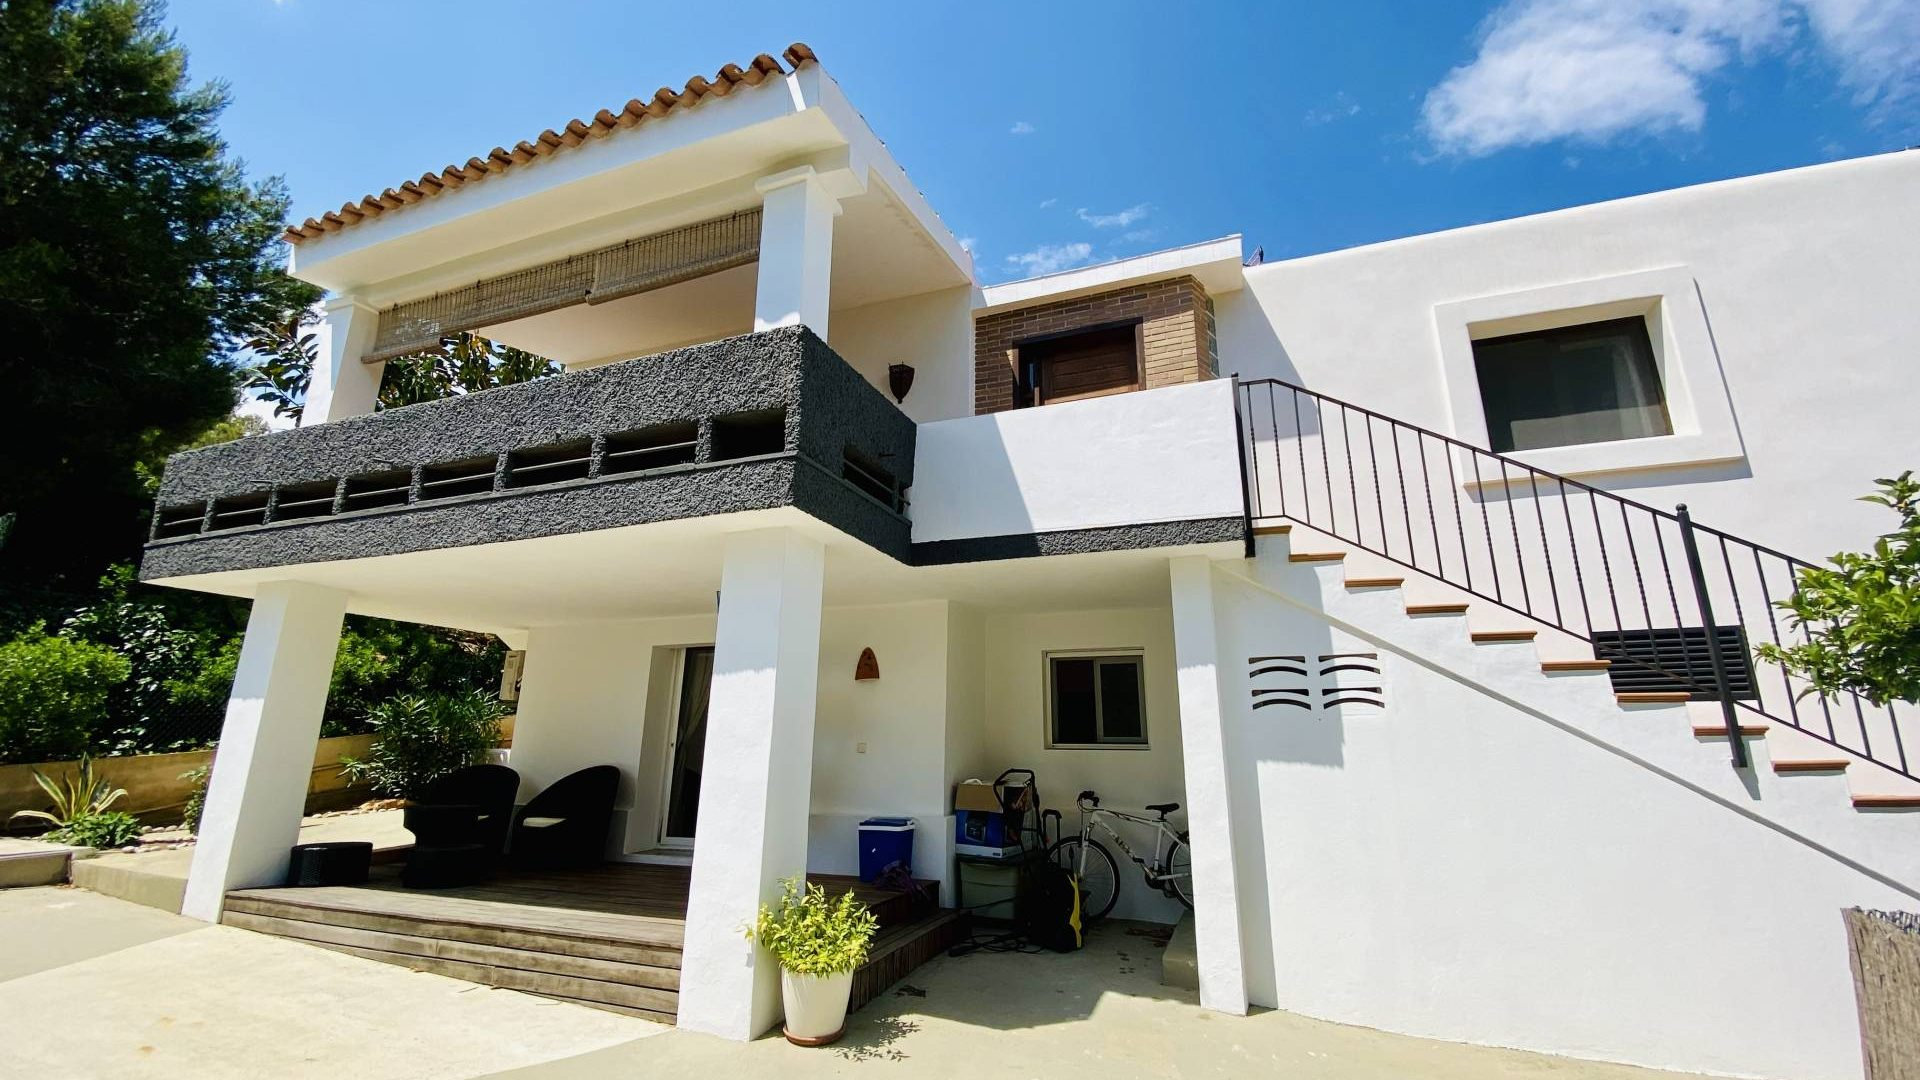 House with garden and swimming pool for sale in St Rafael